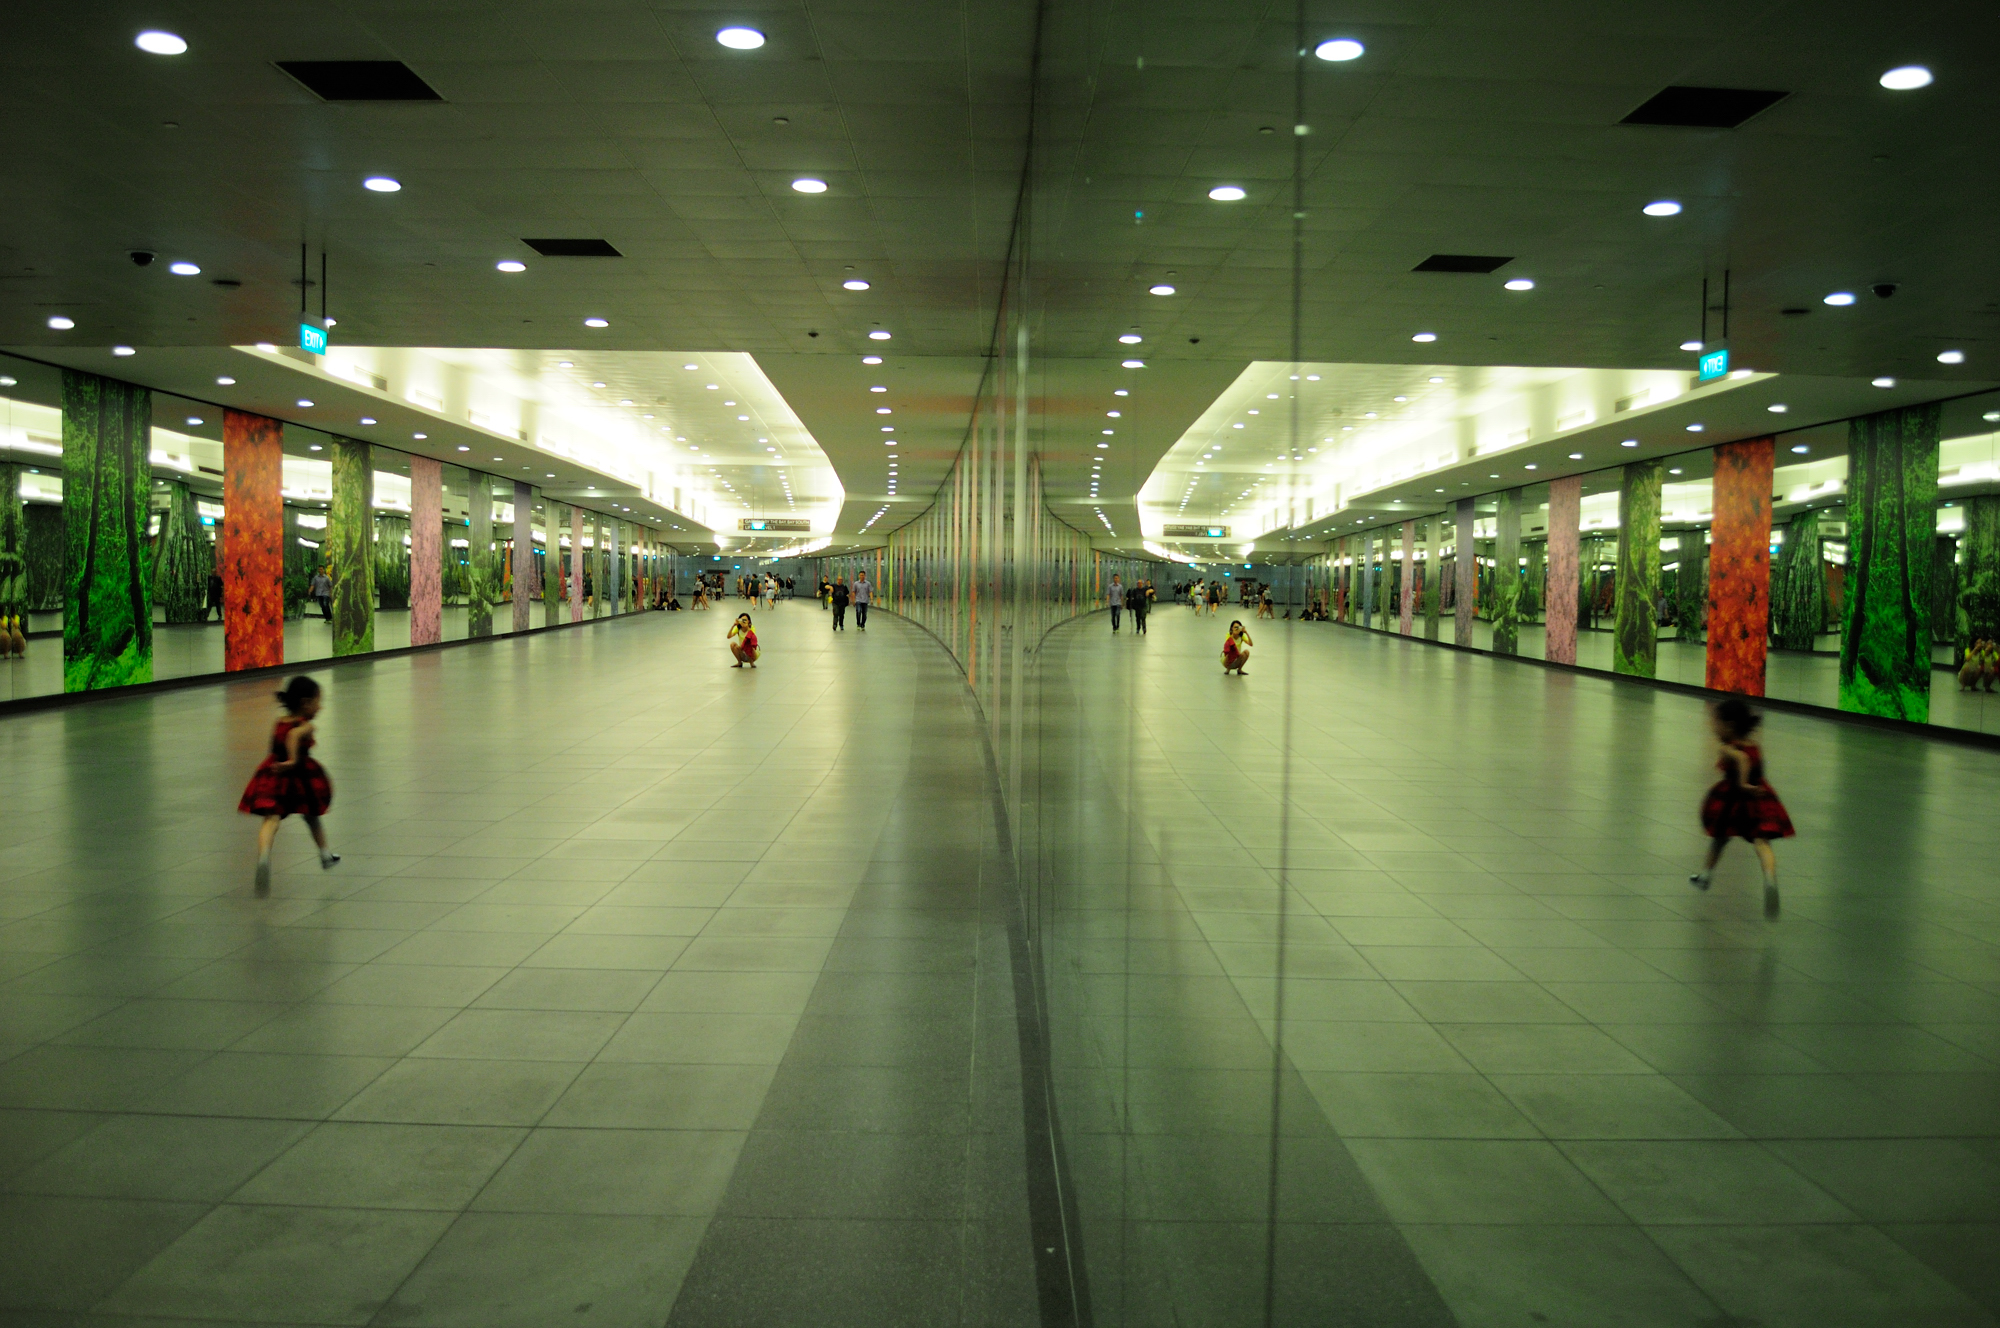 A scene at the Bayfront MRT station in Singapore.